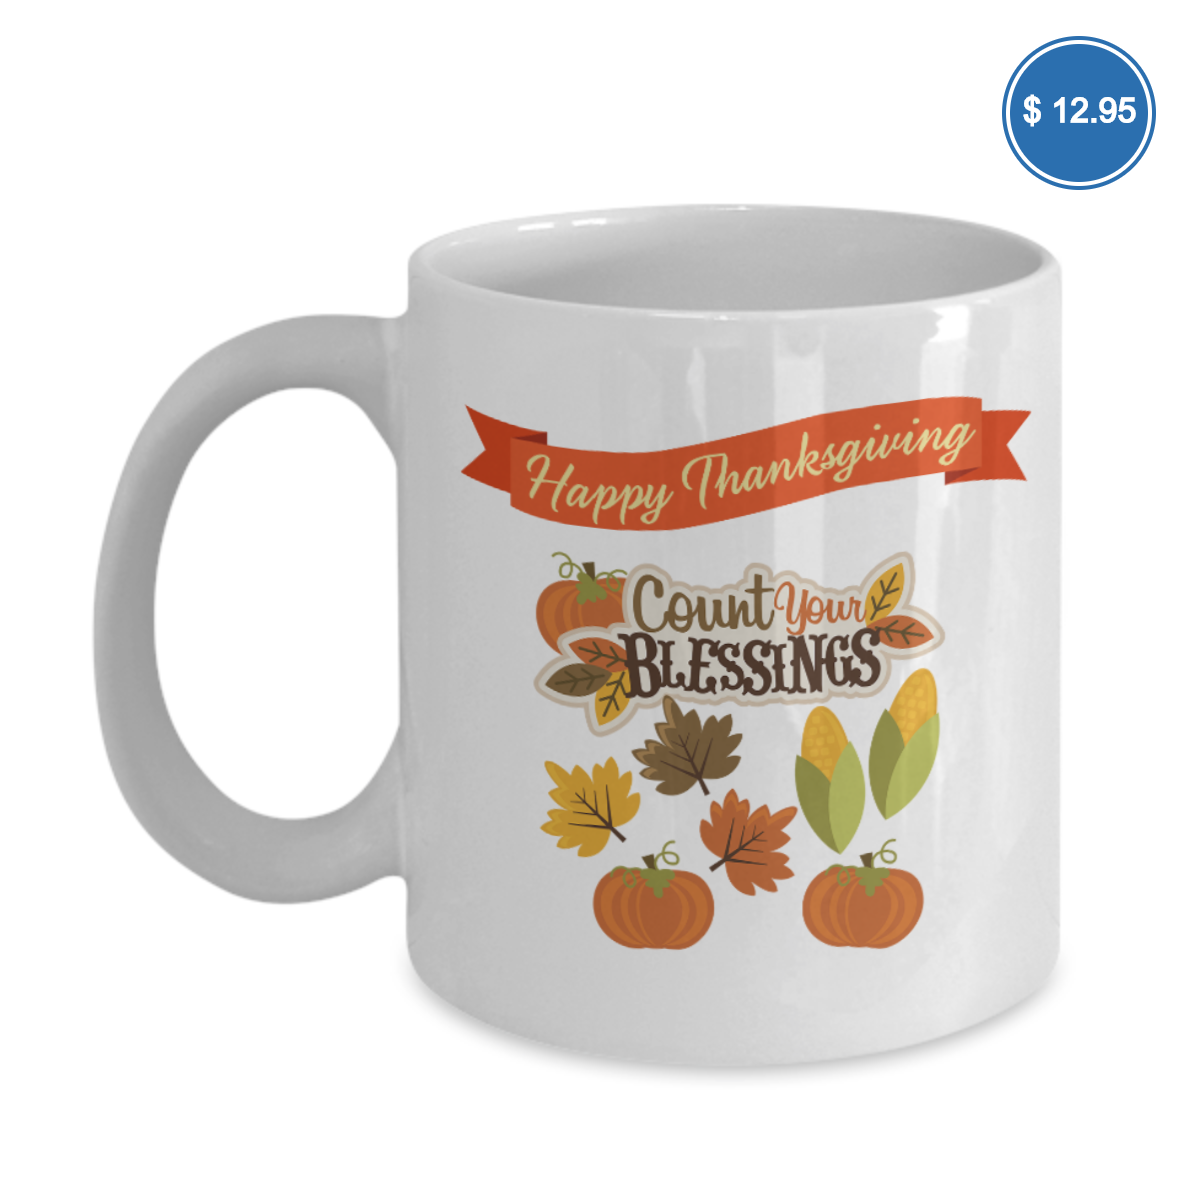 count your blessing coffee mug